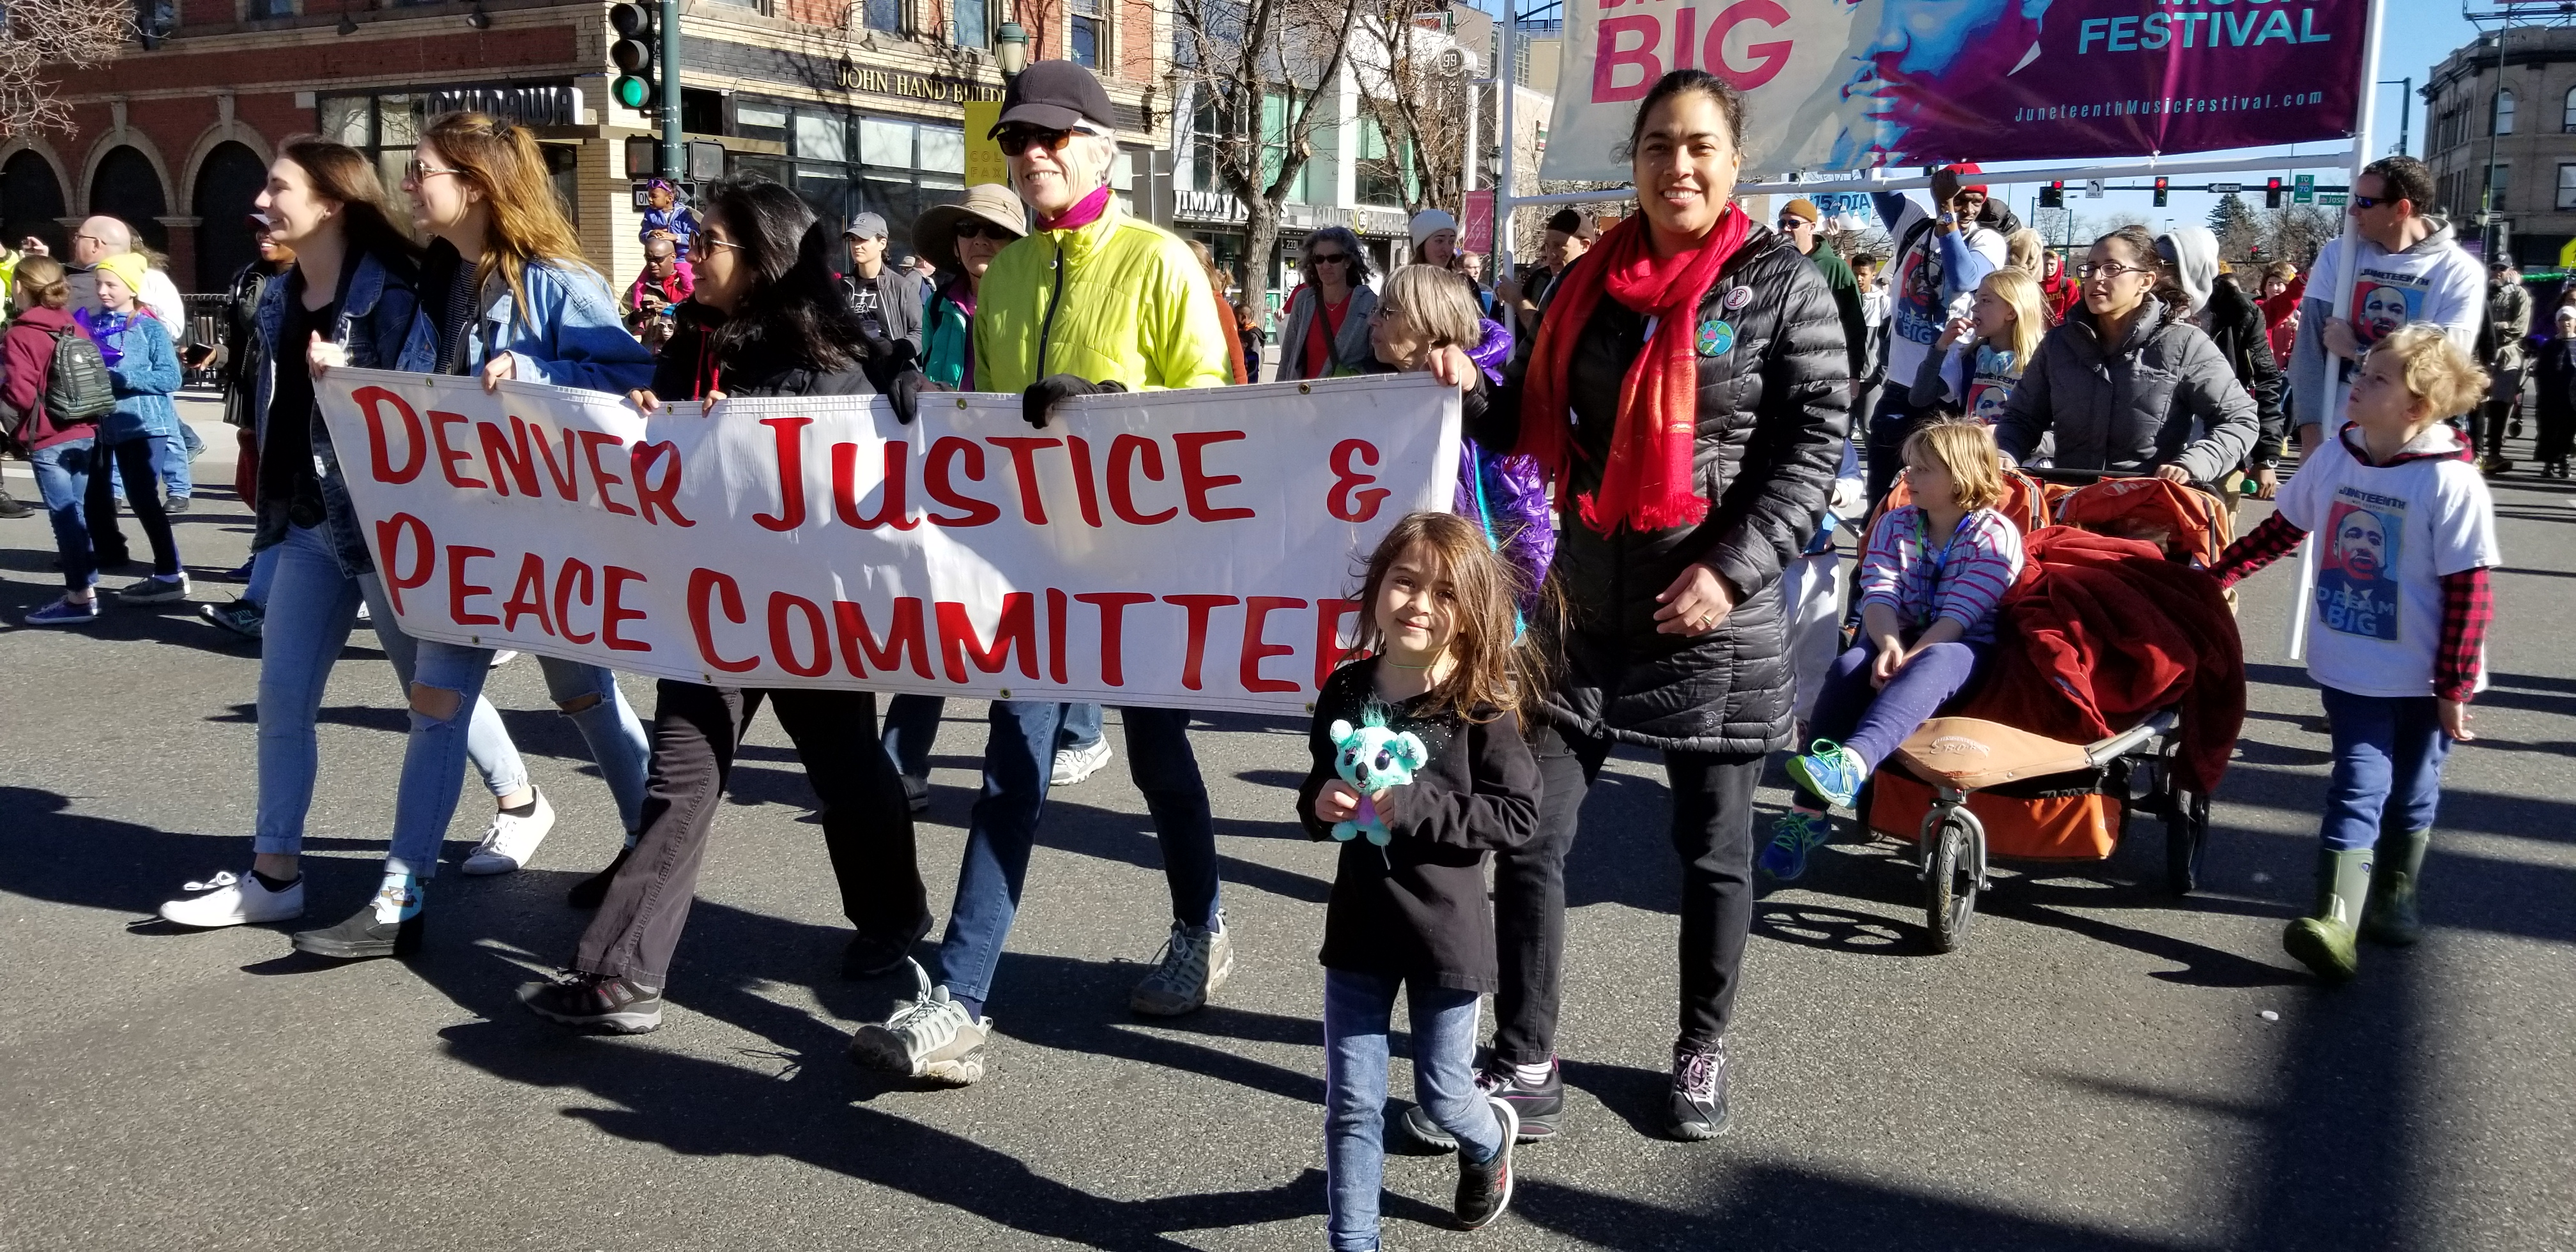 (English) MARADE: MLK March and Parade Monday, January 20th 2020 at 10:30 am